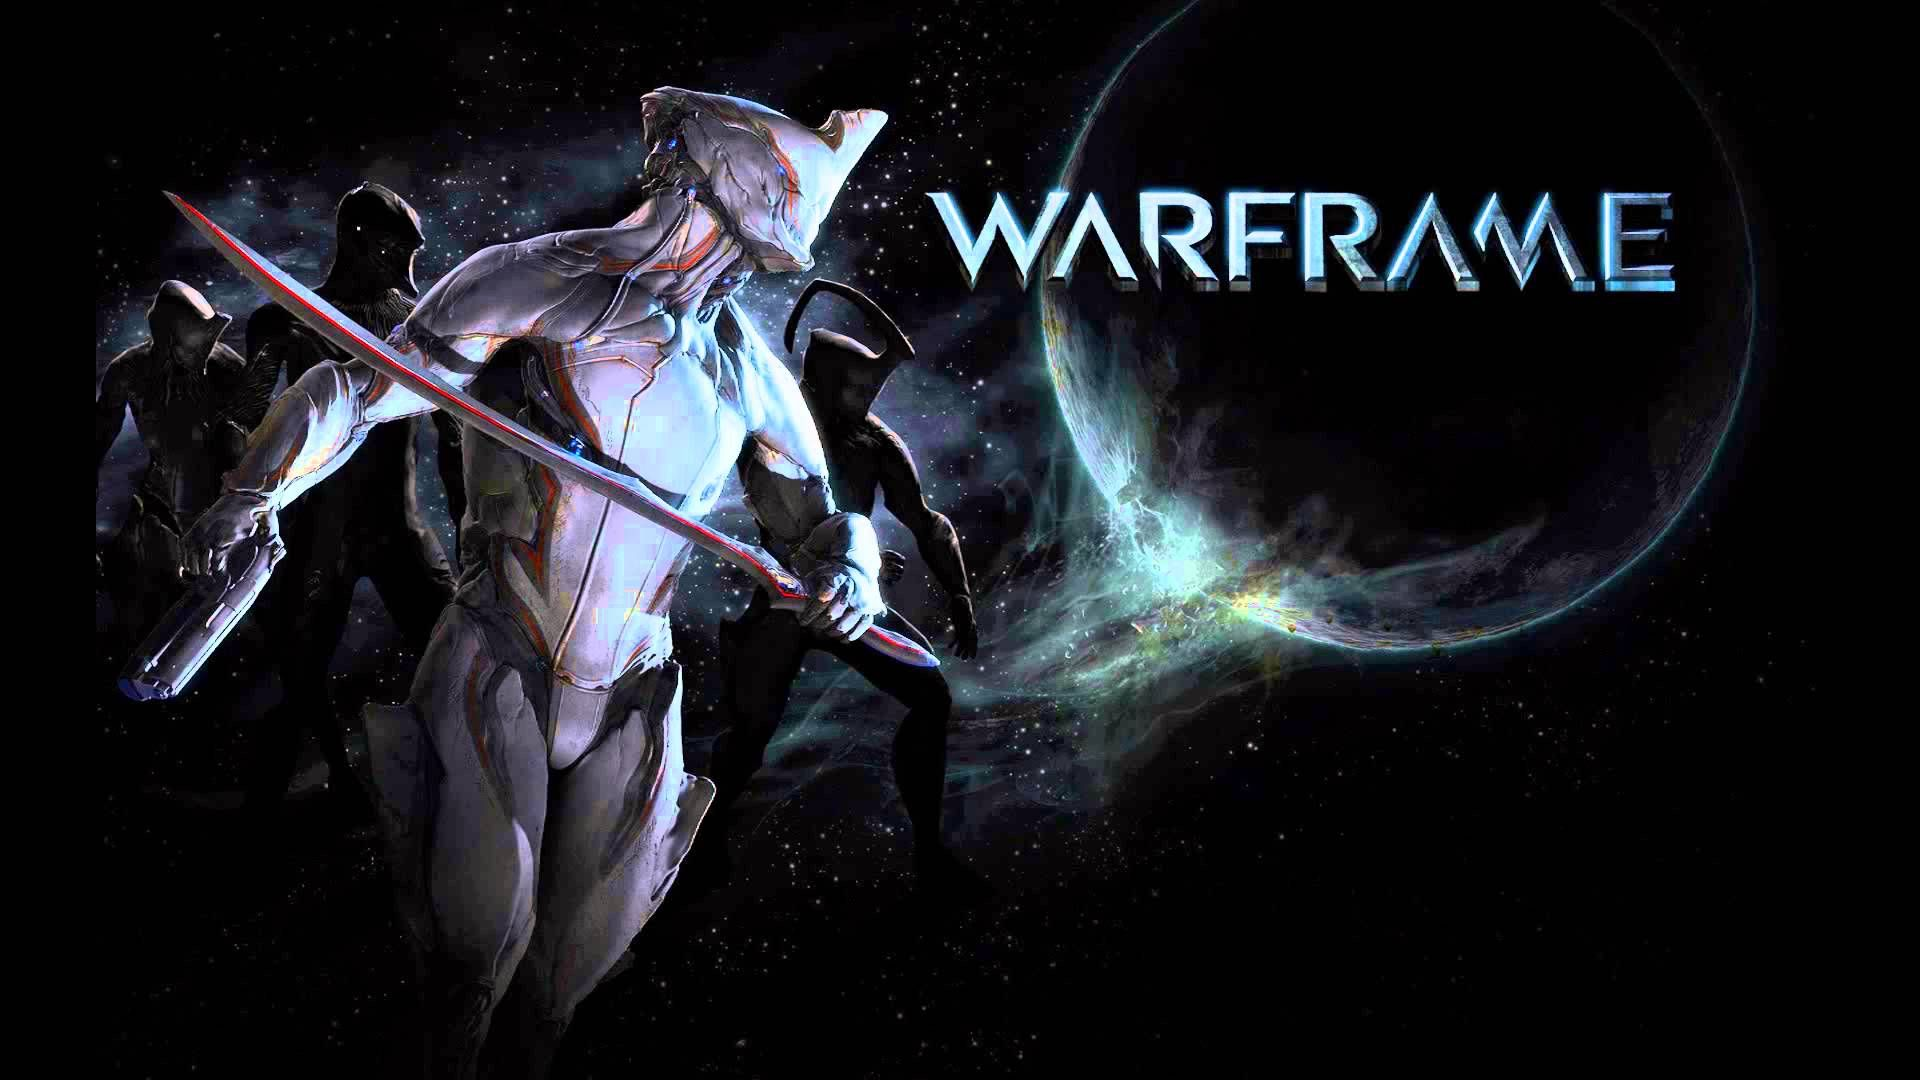 Warframe The Template For Gaas Have You Ever Played Warframe You Haven T Then There Is No Better Time To Get Jum Warframe Wallpaper Warframe Art Xbox One